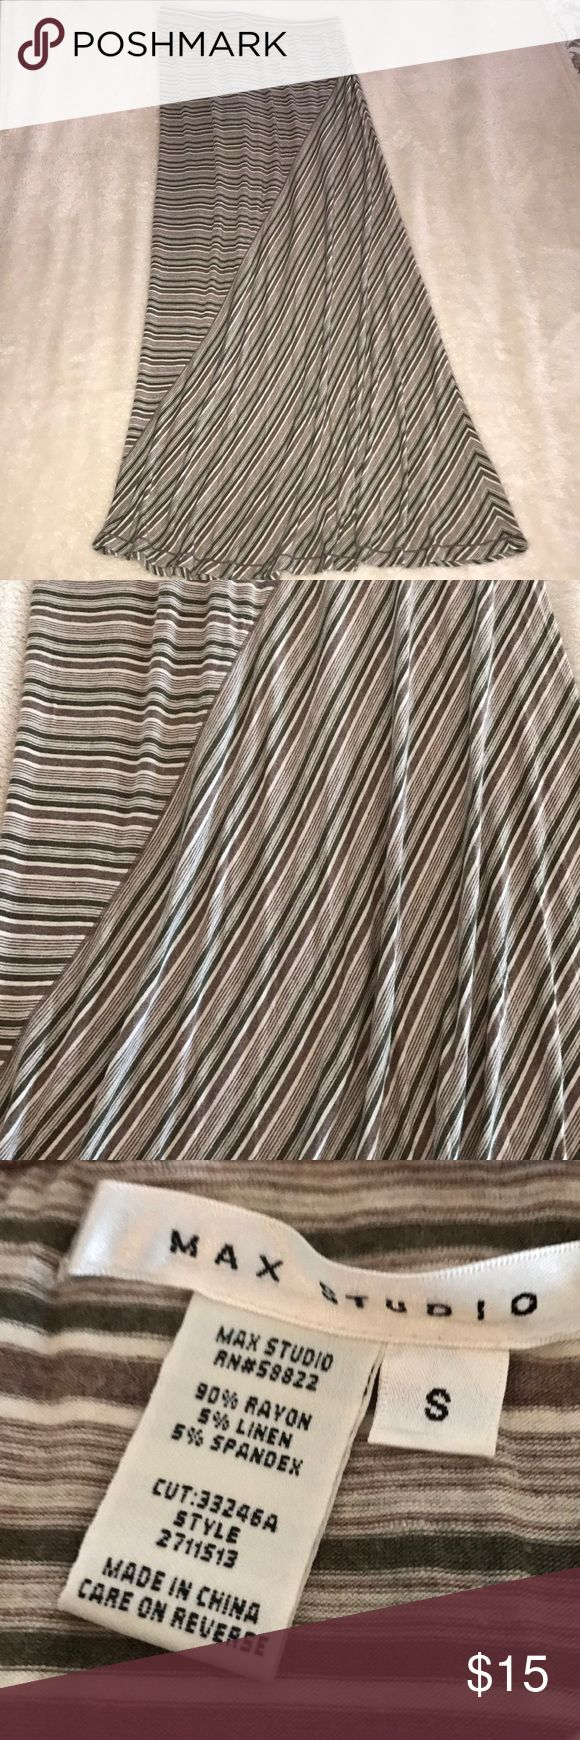 "Max Studio Asymmetrical Stripe Maxi Skirt Sz sm Soft and comfy Max Studio Maxi Skirt size Small. Asymmetrical lines are an olive green,cream and taupe color - so pretty together!!!! Measures about 42.5"" long. Waist measures 14"" and is elastic so has a lot of stretch. Excellent condition!! Smoke free home!! All of our clothes are meticulously maintained and laundered, hung to dry to prevent piling or shrinkage! All reasonable considered. Bundle more than one item and save!! Thank You!!! Max…"